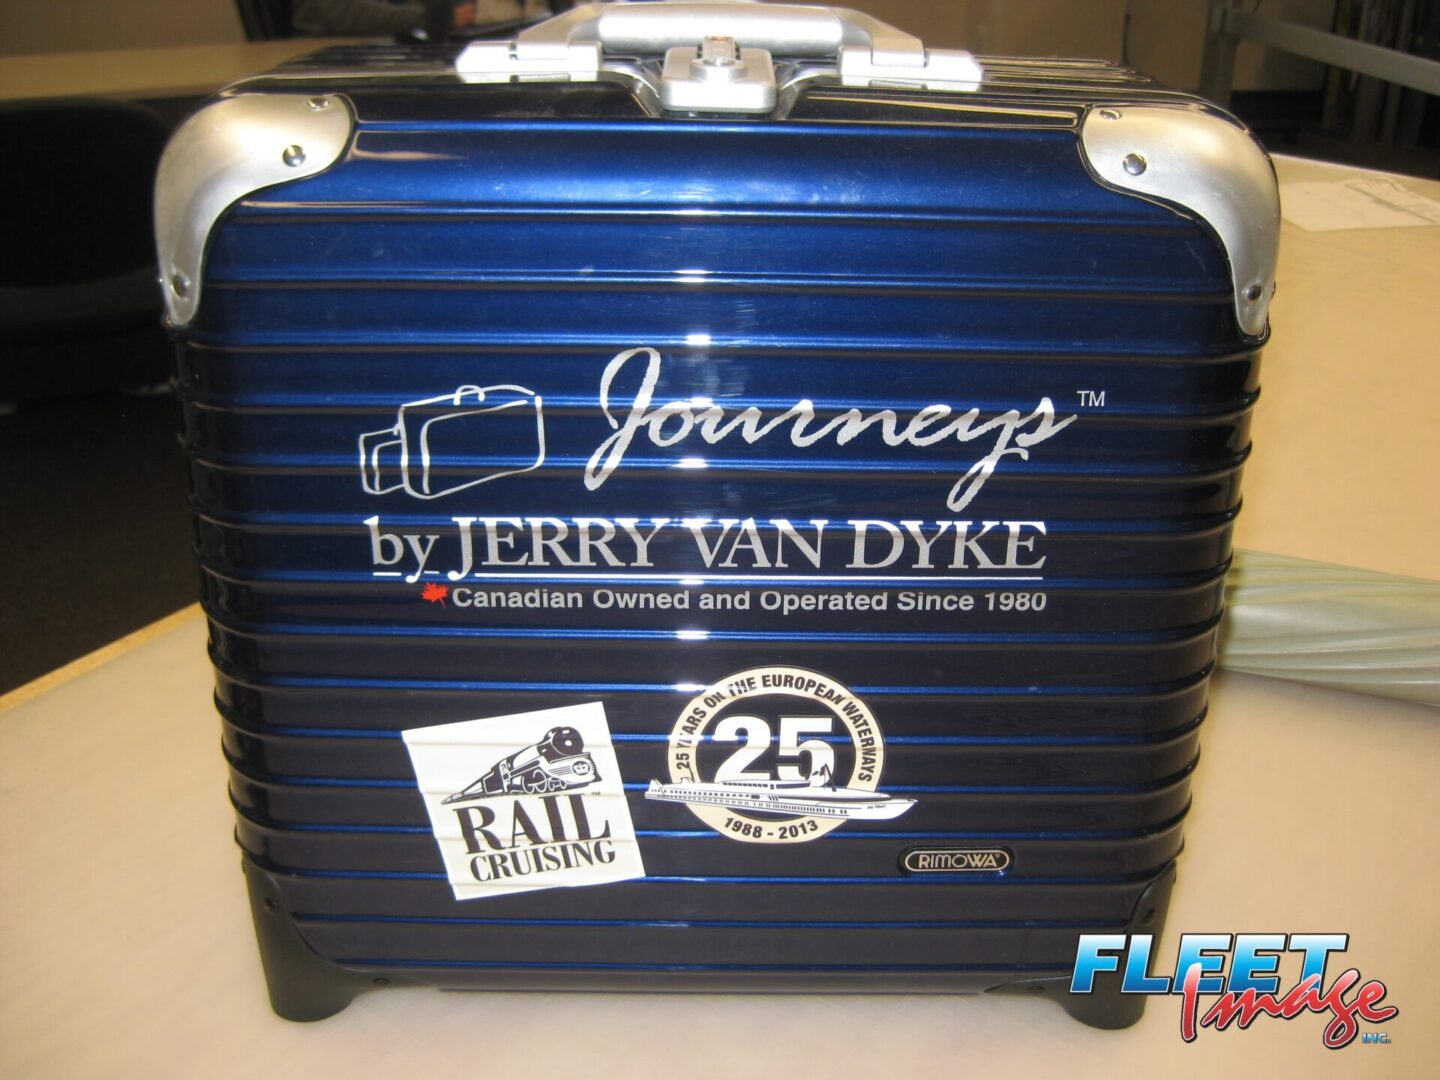 Customized decal stickers on a suitcase